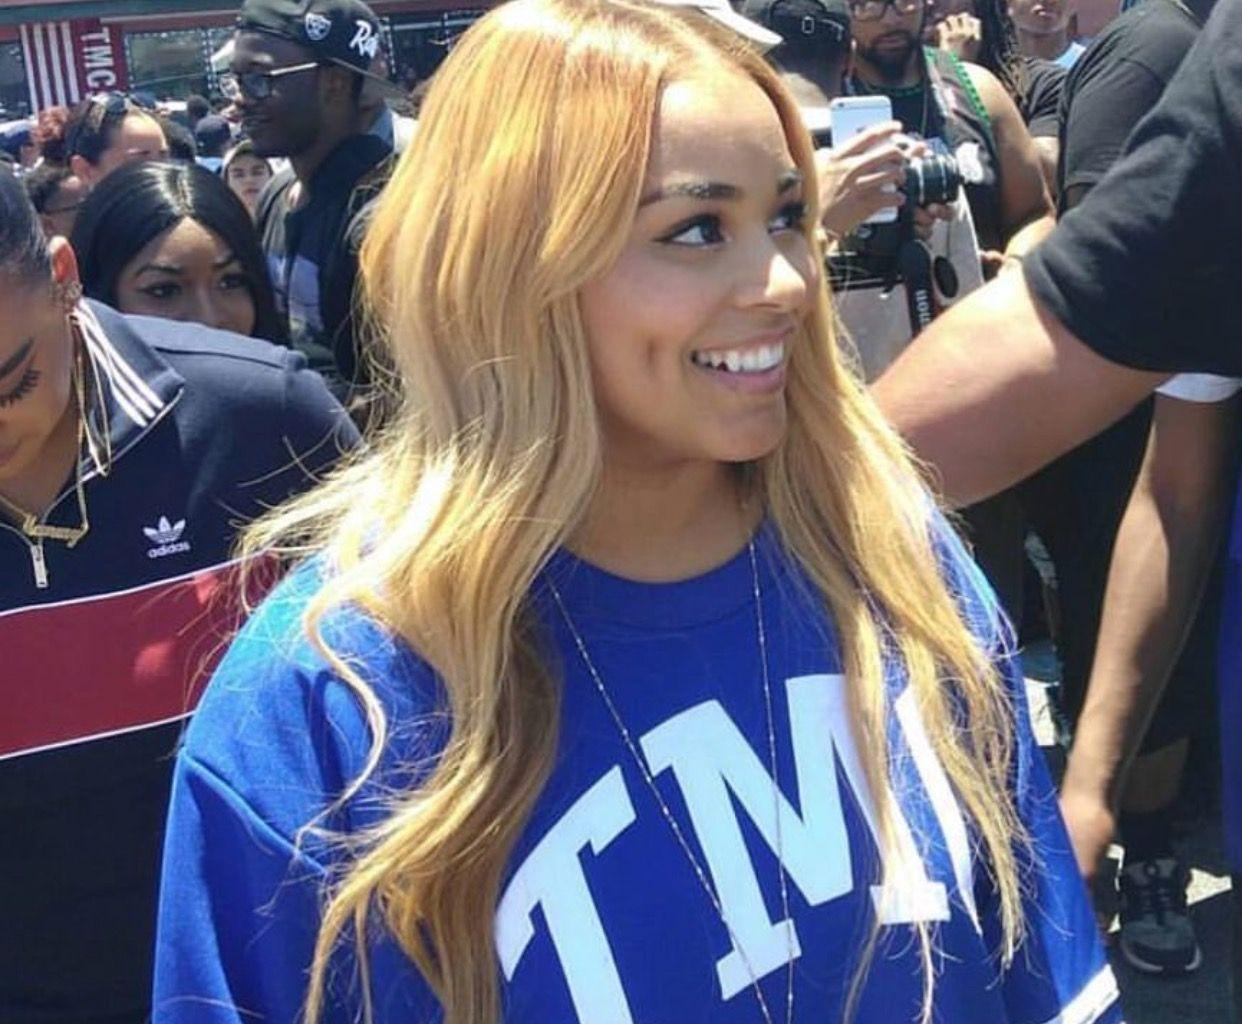 Lauren London Speaks On Celebrating Mother's Day Following Her Heartbreaking Loss - She Offers Uplifting Words To Those In Need